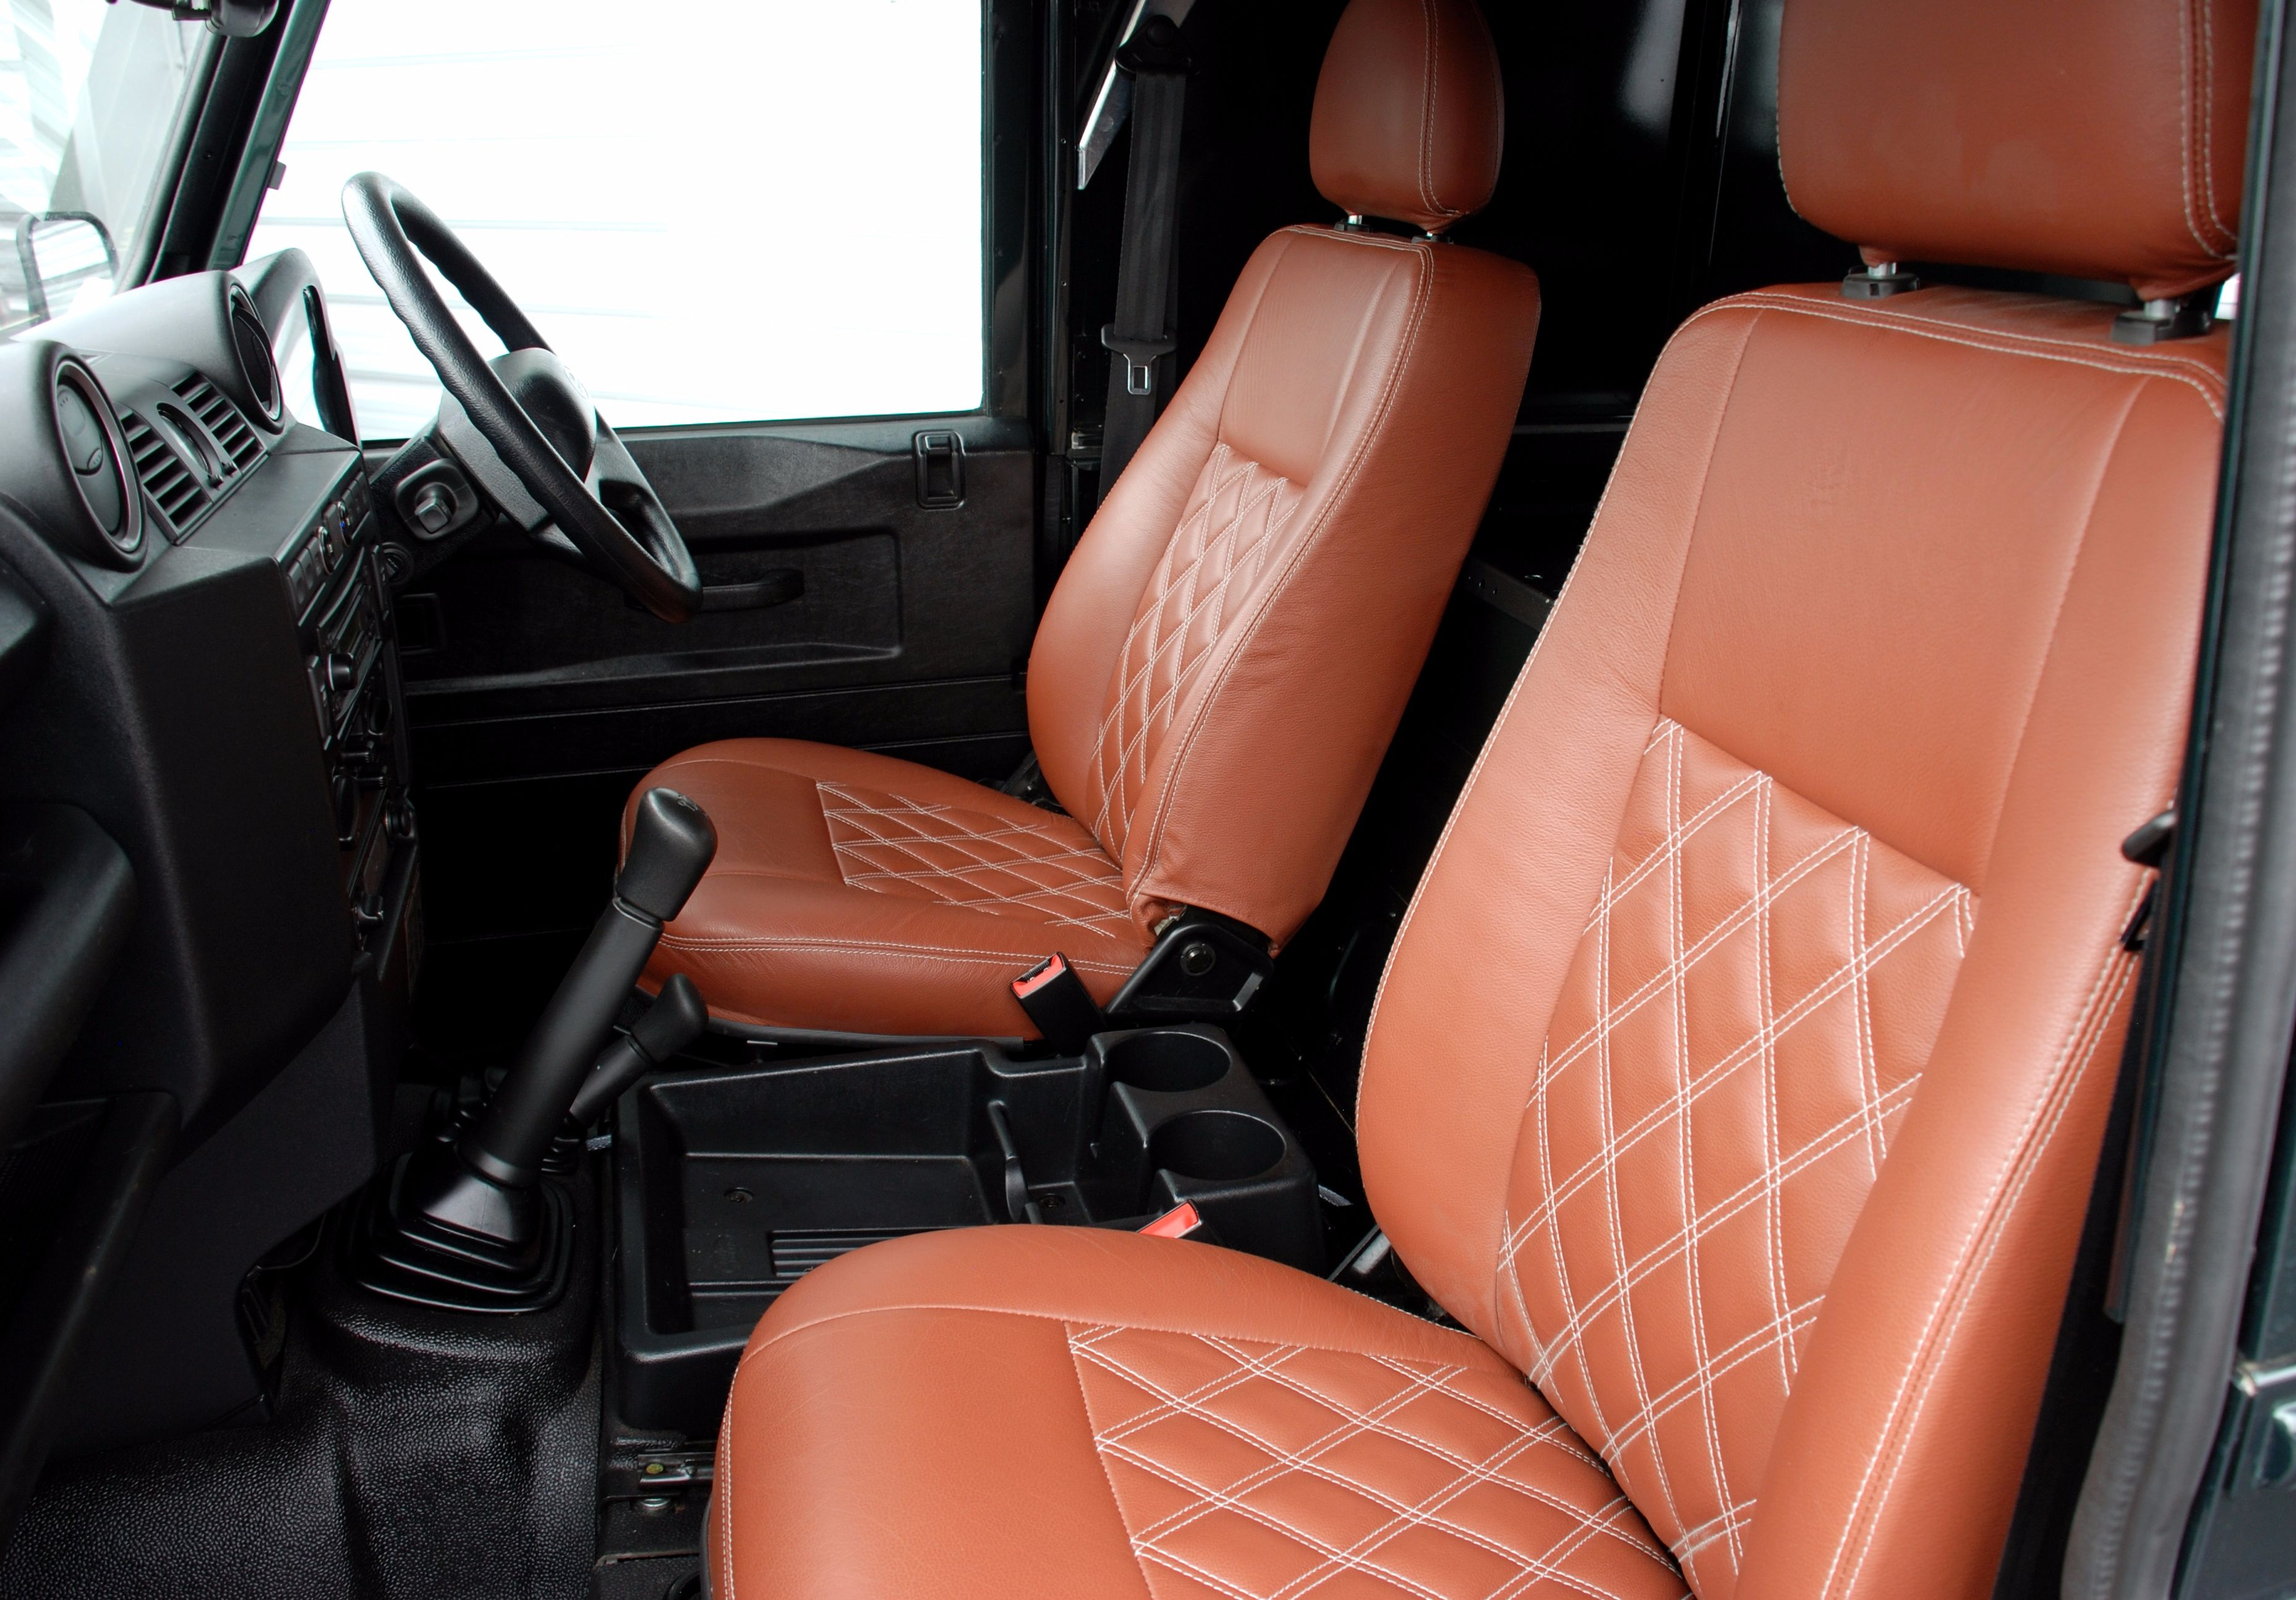 Heated Front Seat and Leather Upgrade for Defender Vehicles